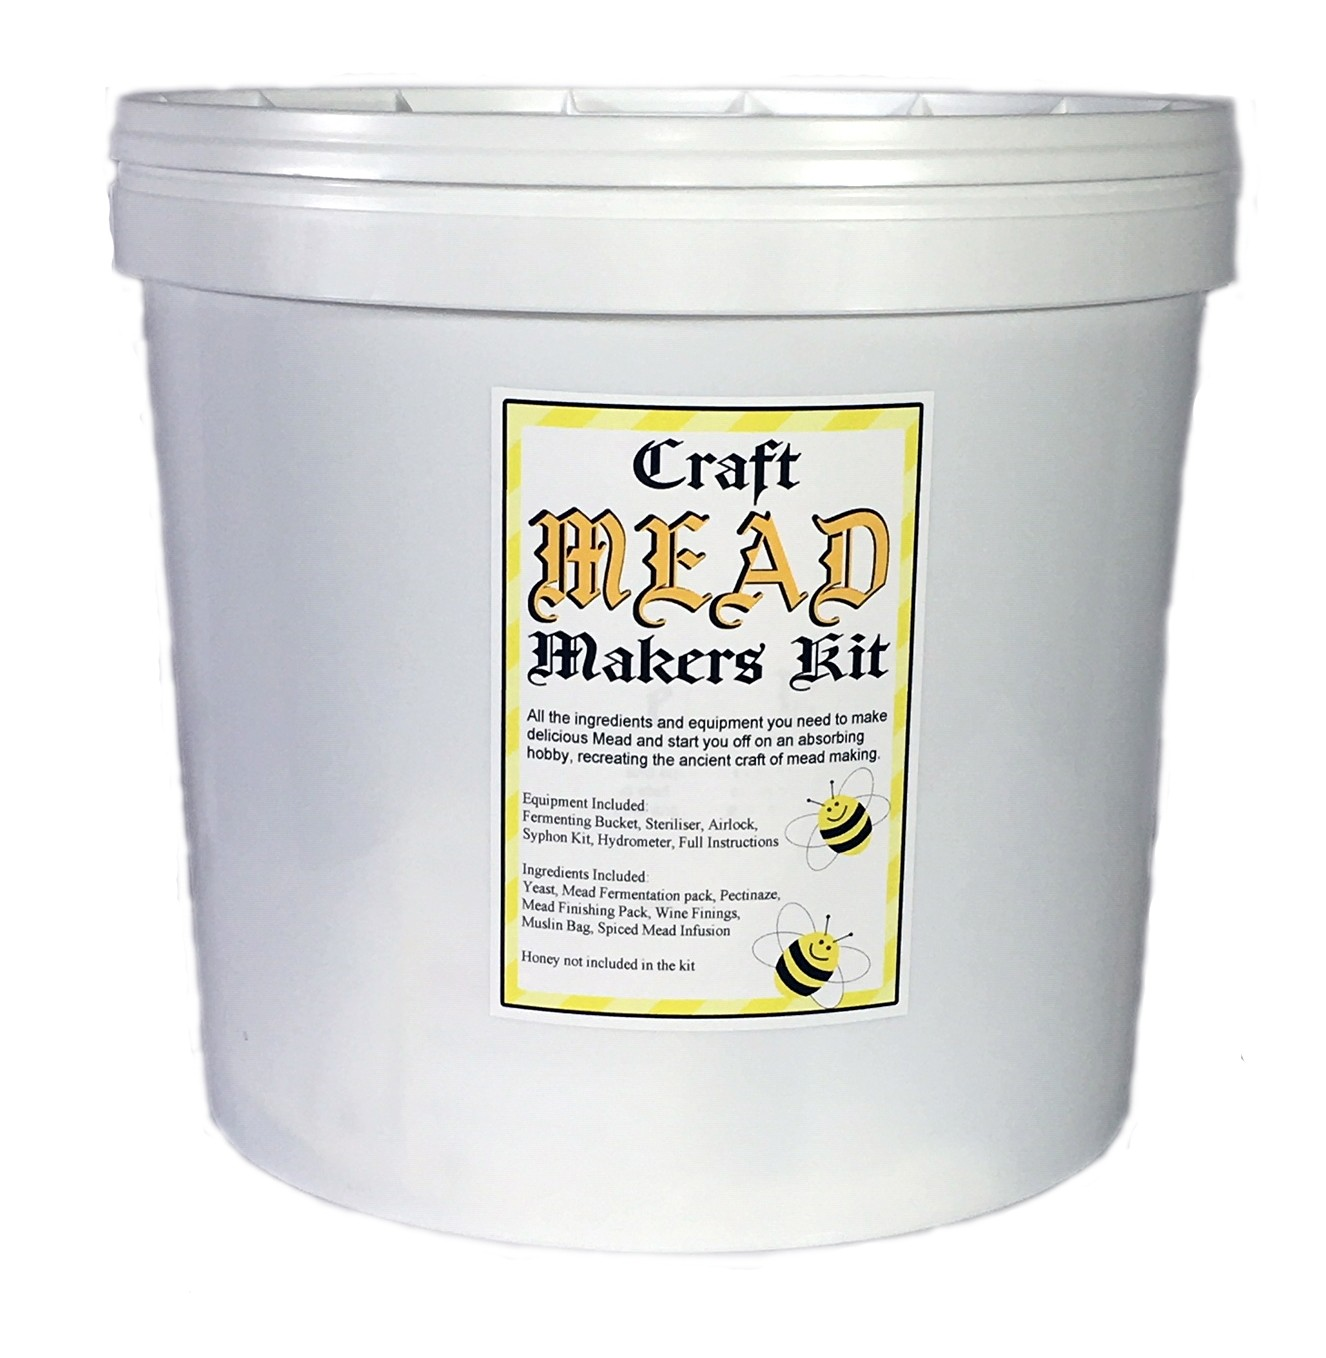 Craft Mead Makers Kit